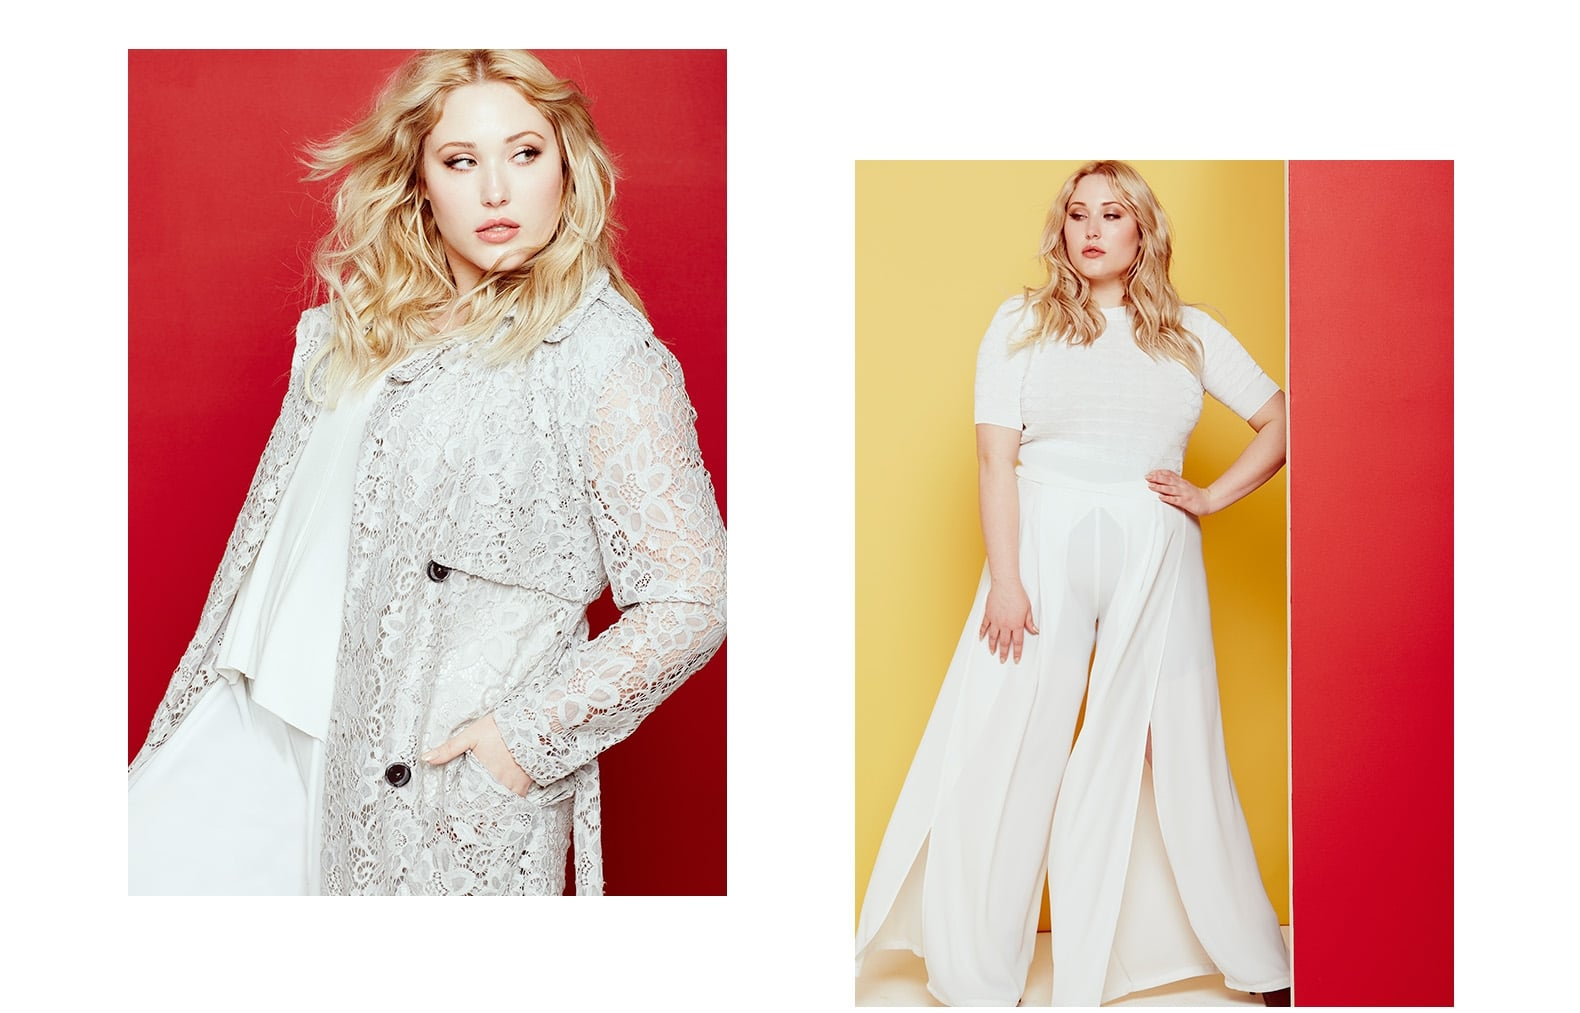 48ec88eca05 Elvi Plus Size Clothing Spring 2016 Collection Features Hayley Hasselhoff